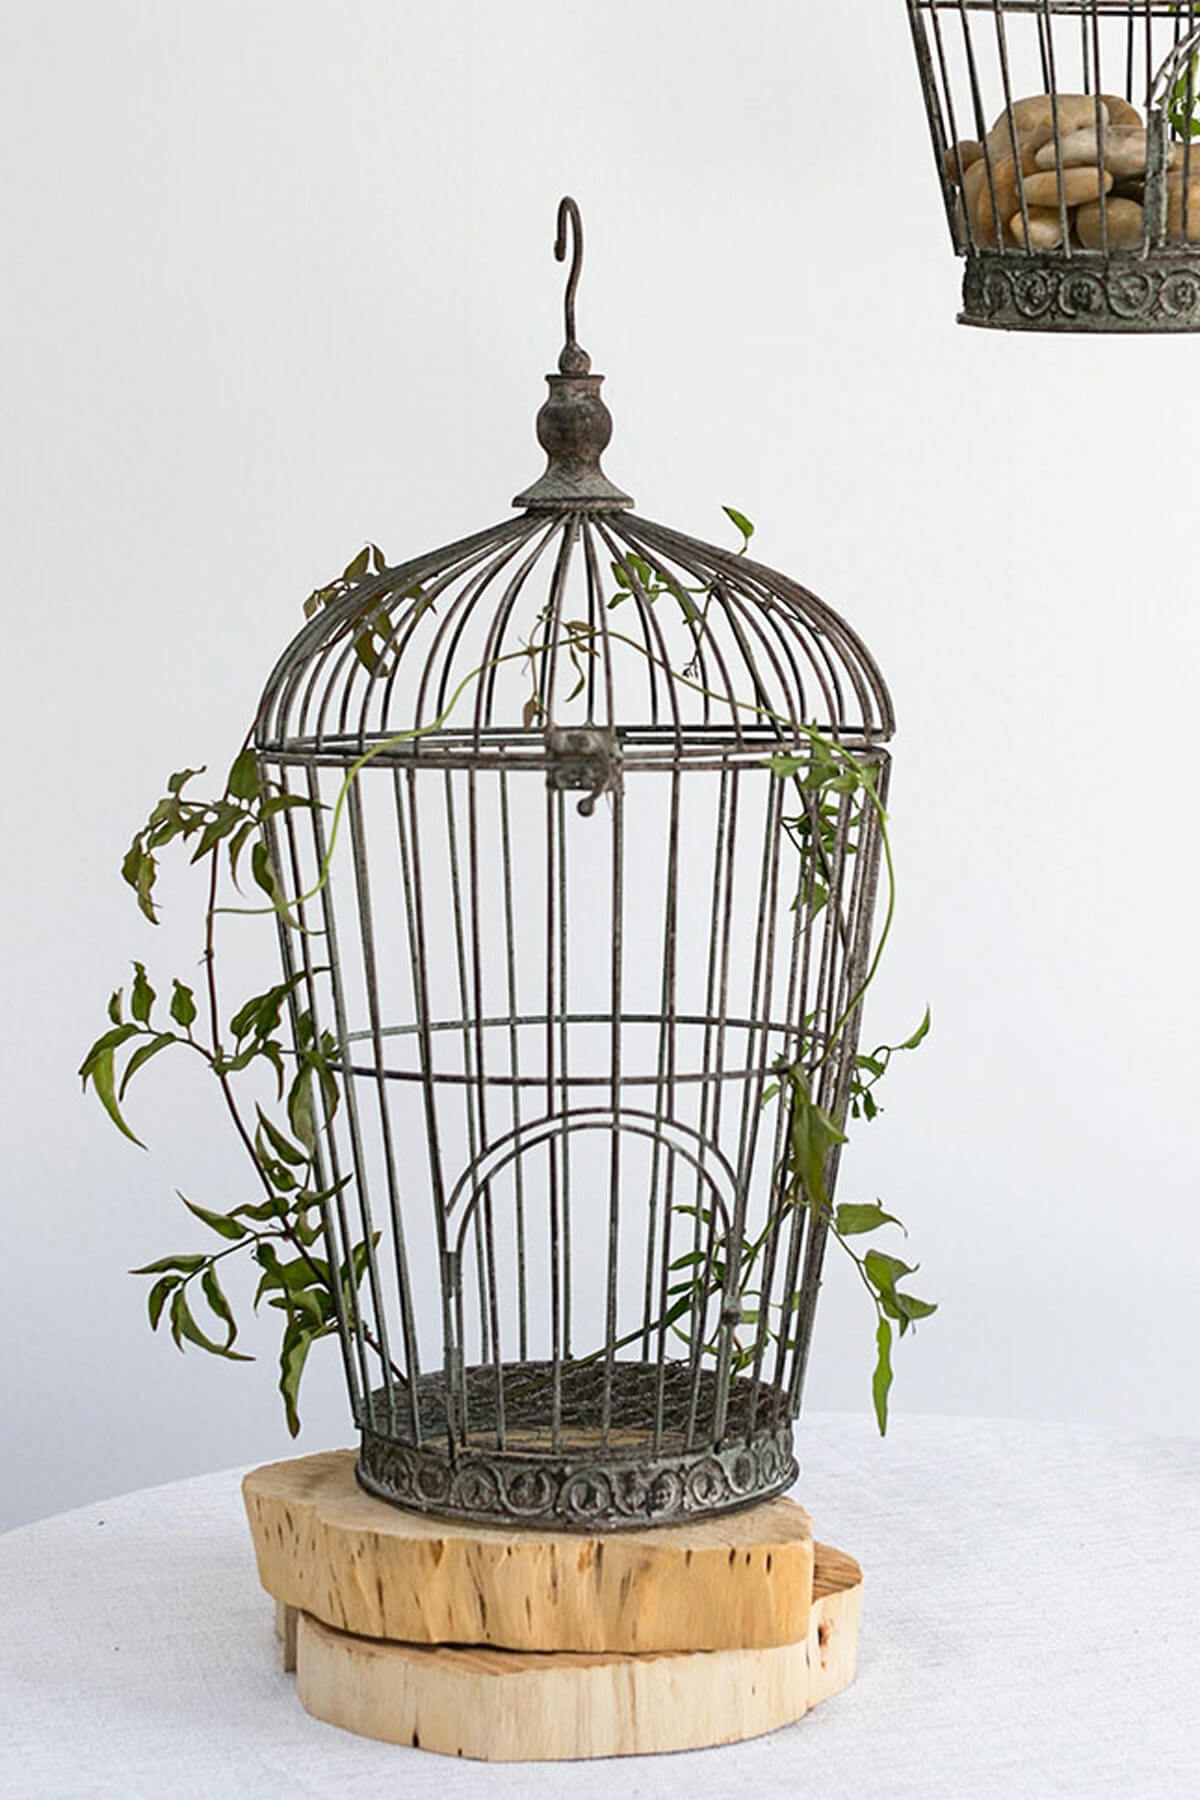 Decorative Birdcages|Bird nests & more|SaveOnCrafts